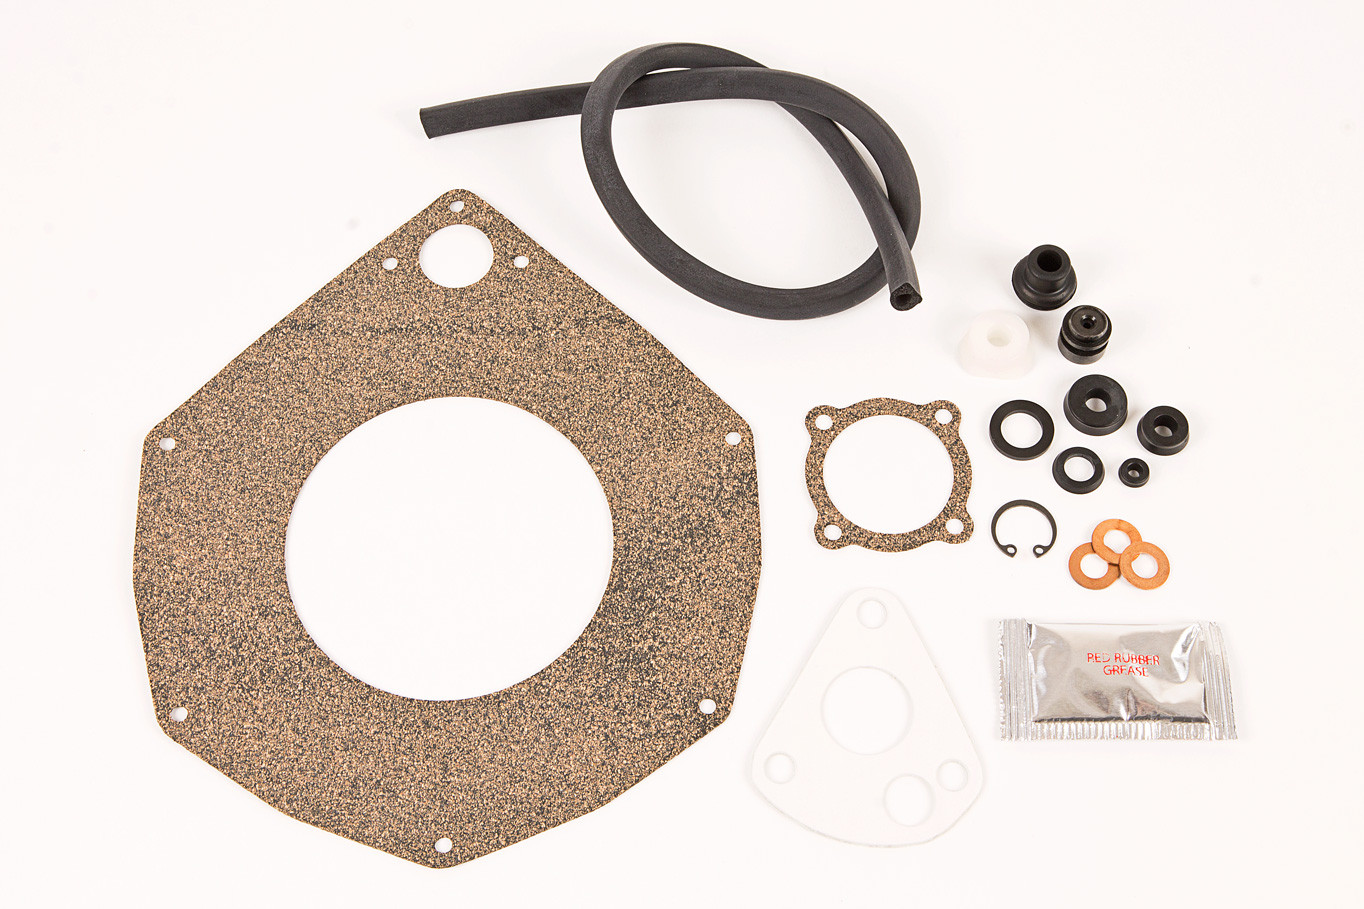 Brake servo repair kit